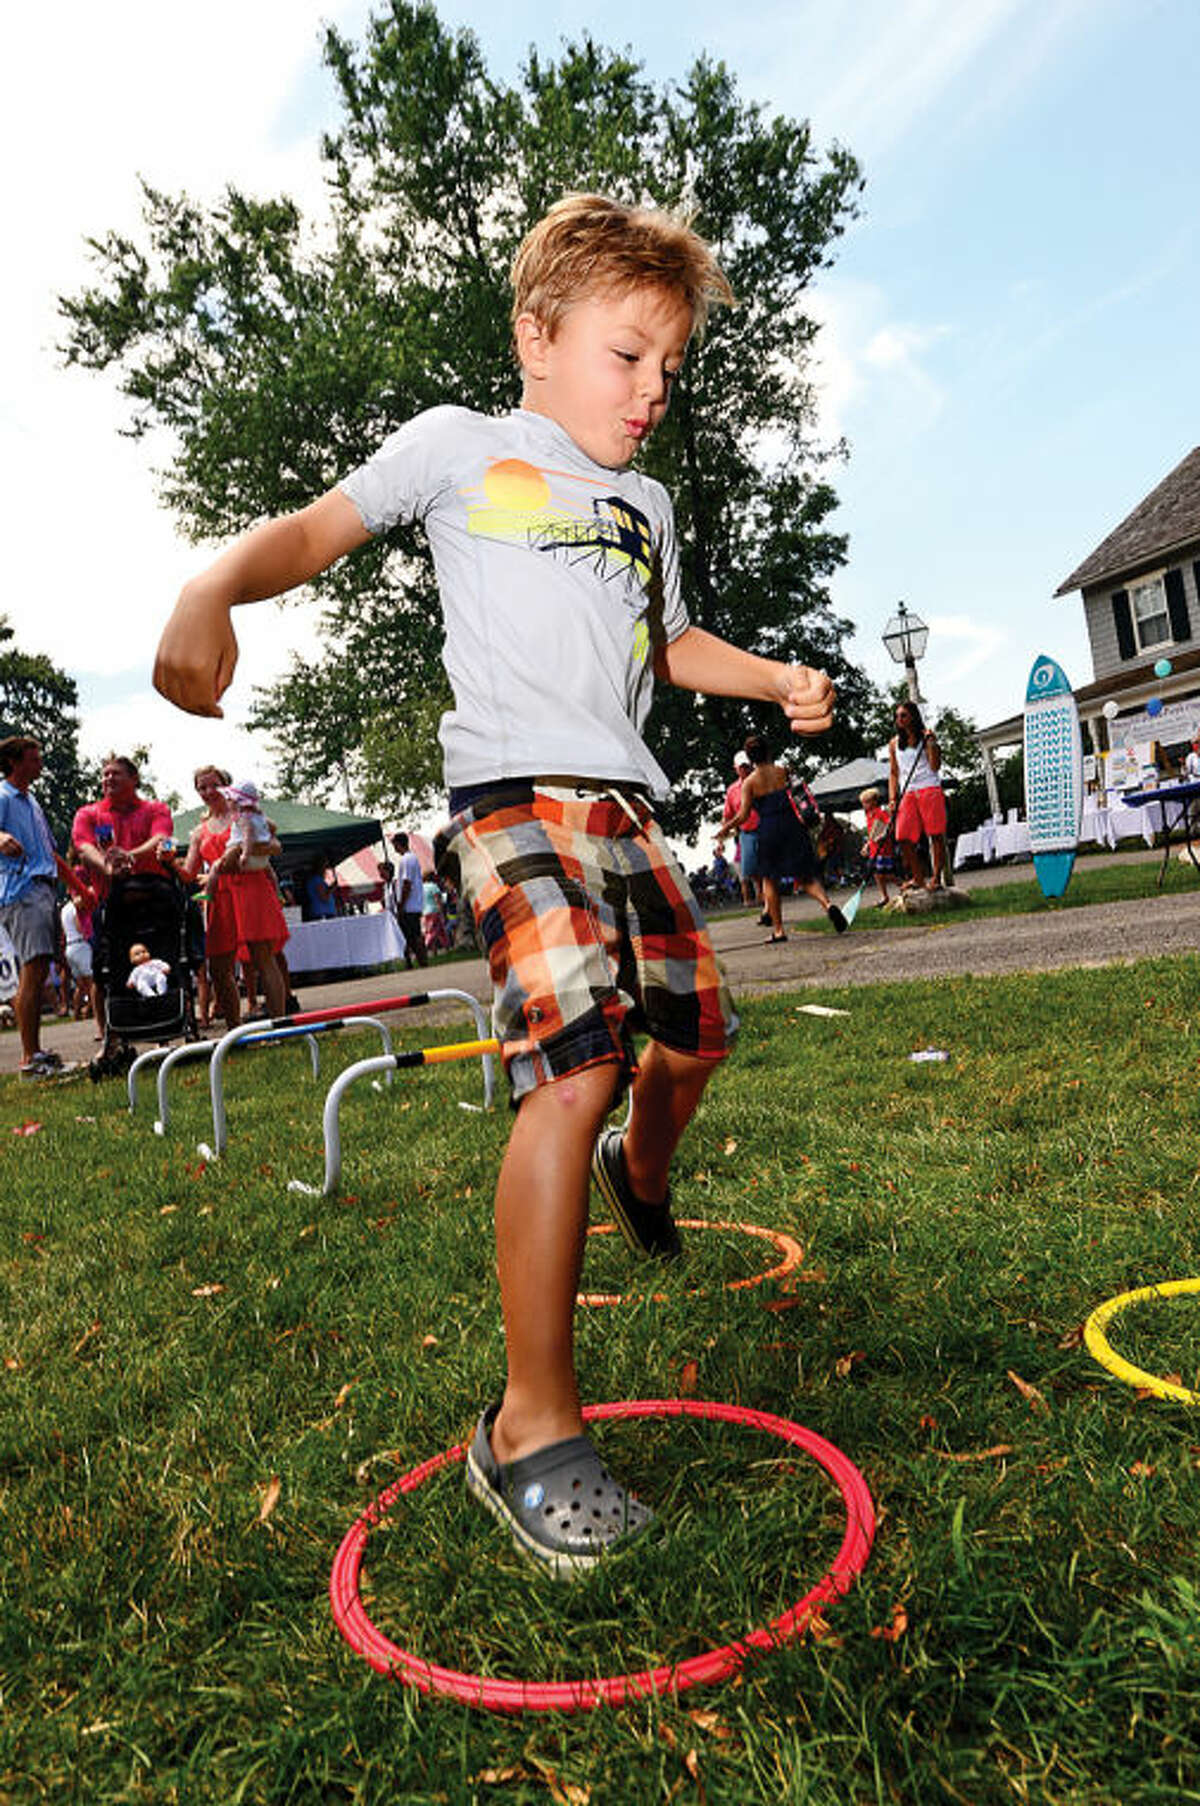 Hour photo / Erik Trautmann Reilly Tanner runs the obstacle course at the 44th Annual River Ramble at Pinkney Park Saturday.